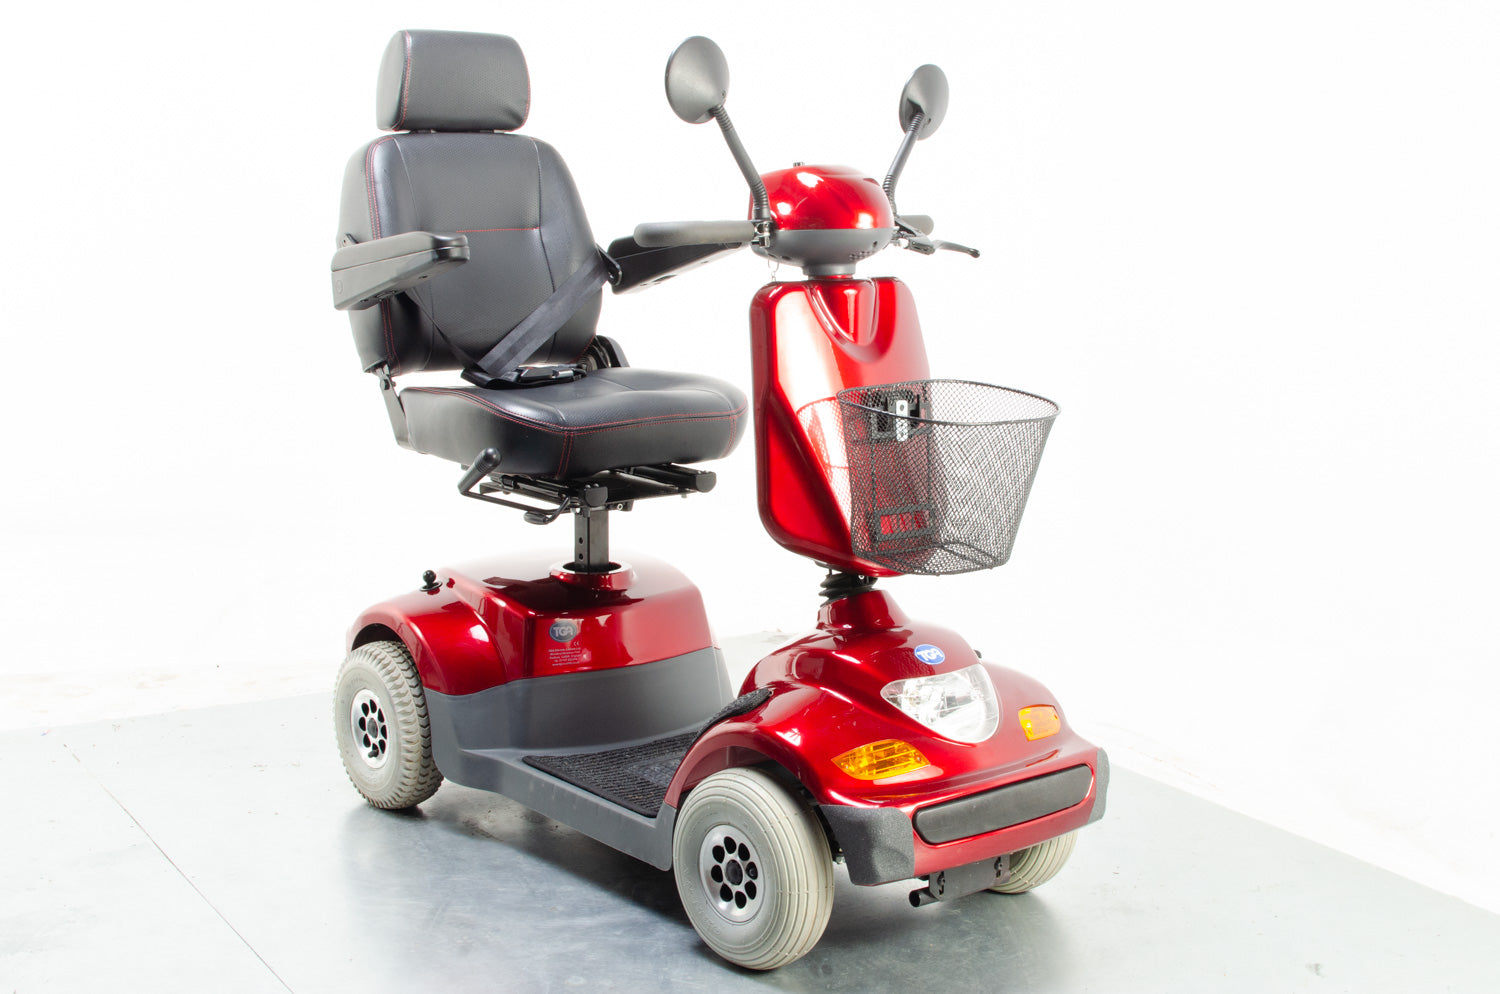 2014 TGA Sonet 6mph Mid Size Mobility Scooter in Red